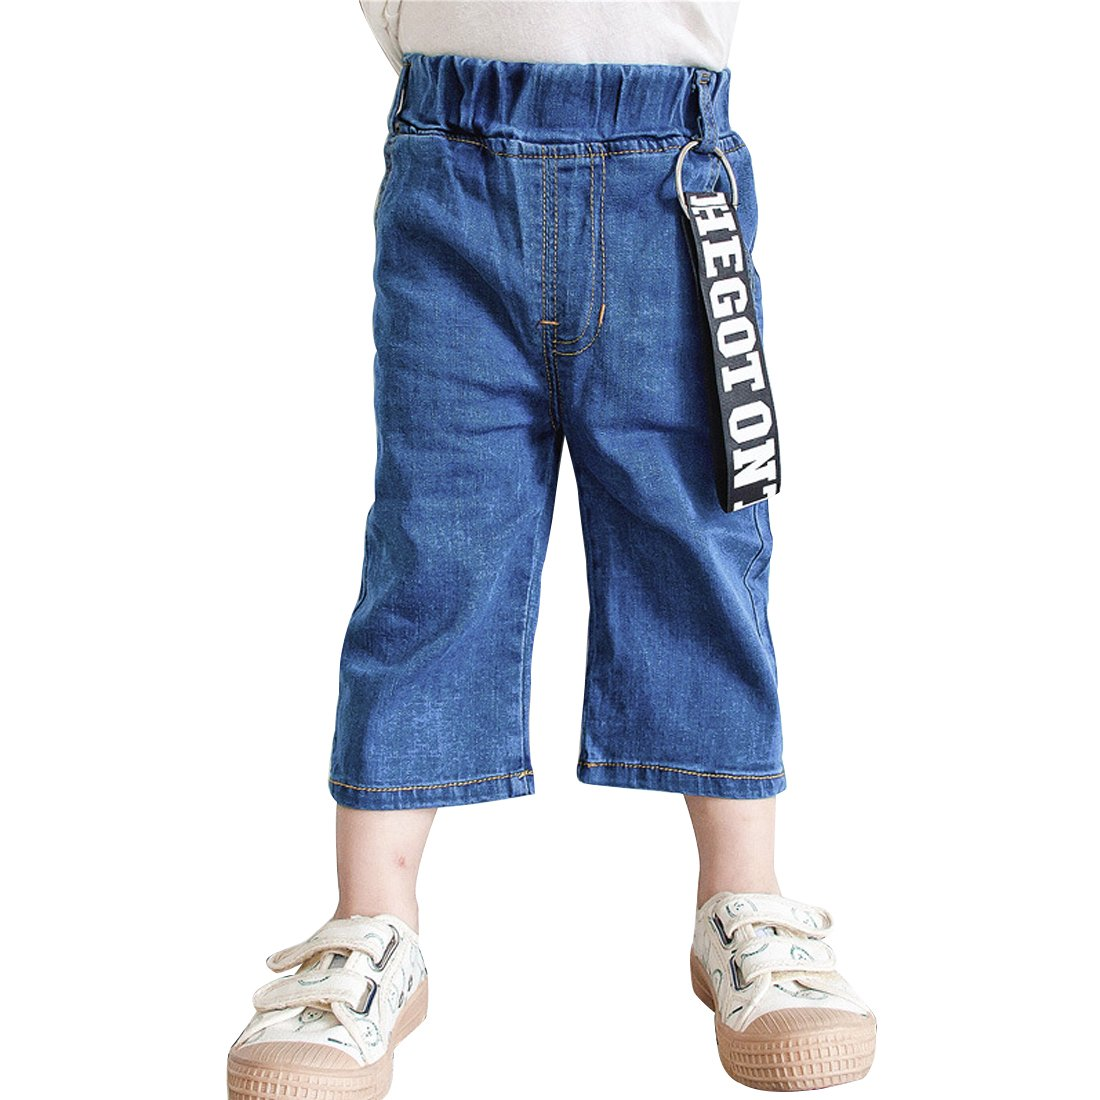 【在庫有】 PAUBOLI B07C2ML6RF PANTS PAUBOLI ユニセックスベビー 2-3 Years PANTS B07C2ML6RF, 京都 森乃家:8ef2e4da --- a0267596.xsph.ru